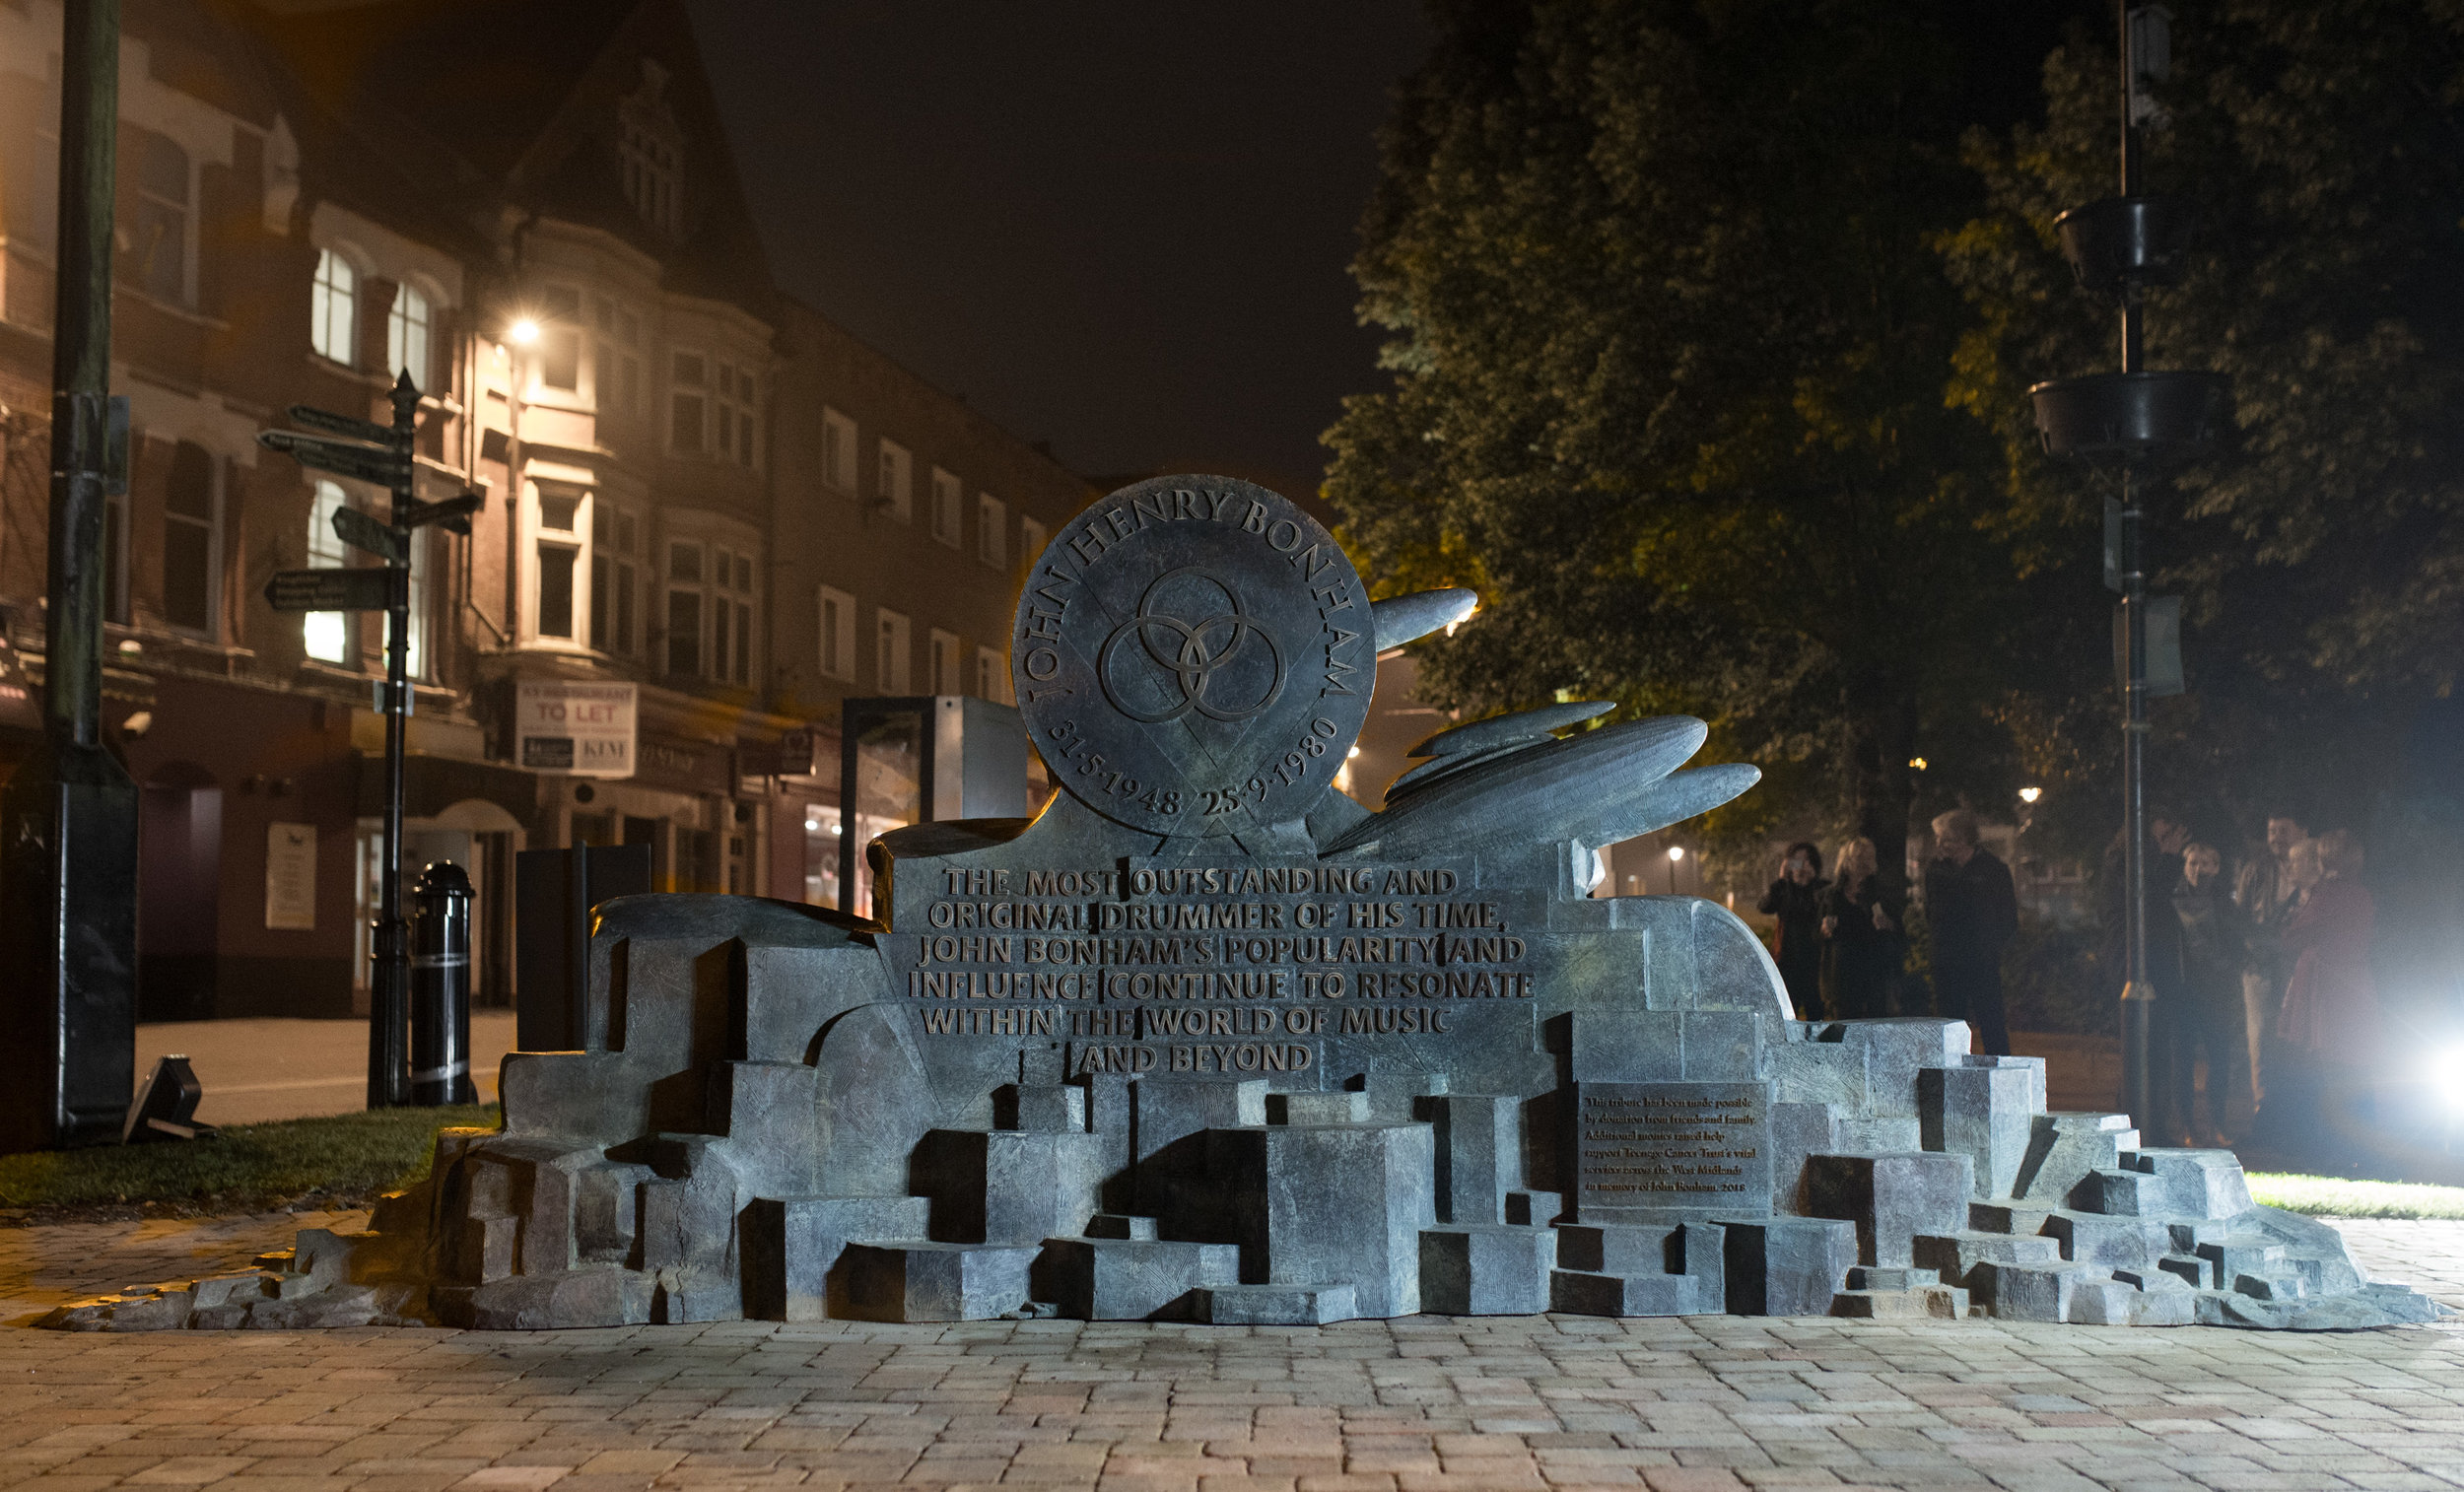 John Bonham memorial sculpture was commissioned in 2018 and unveiled in the same year on 31st May to coincide with what would have been John's 70th Birthday. This photograph of the inscription side was taken during the overnight installation.